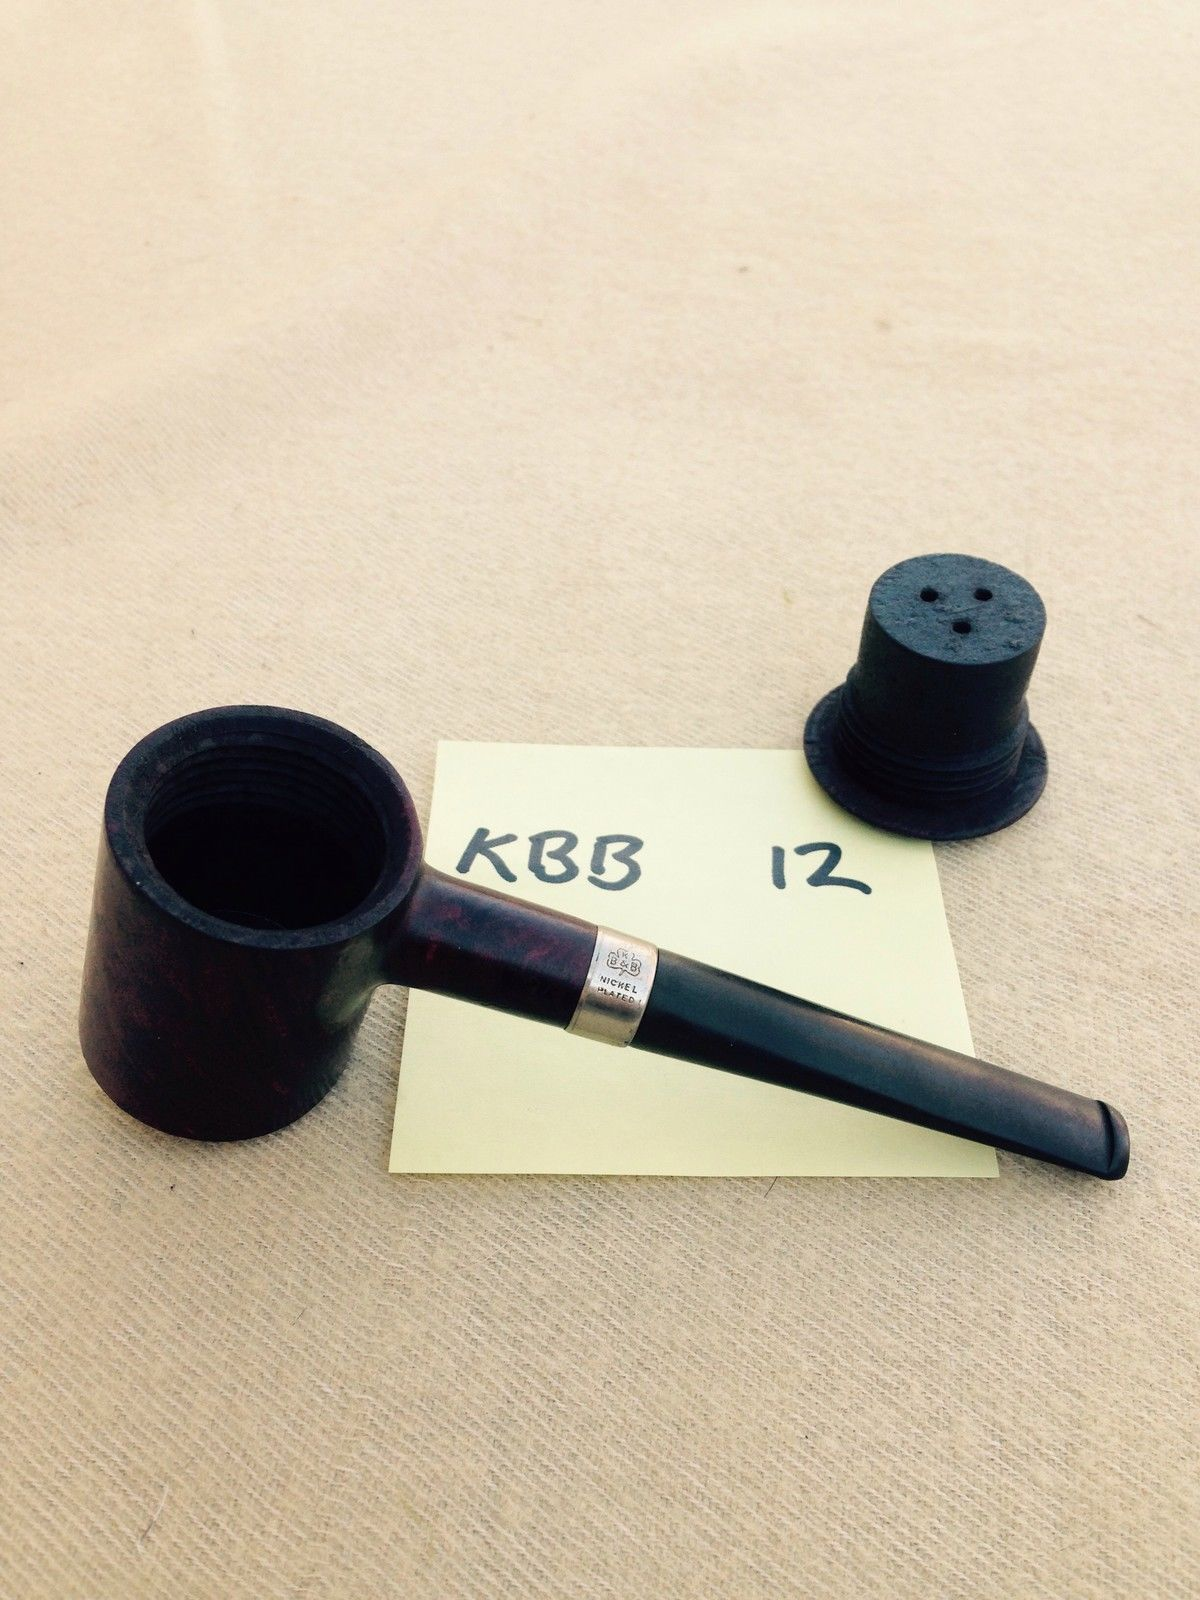 DAWES PIPE***, KBB Capitol Pipe, RARE, Removable Chamber, Estate ...